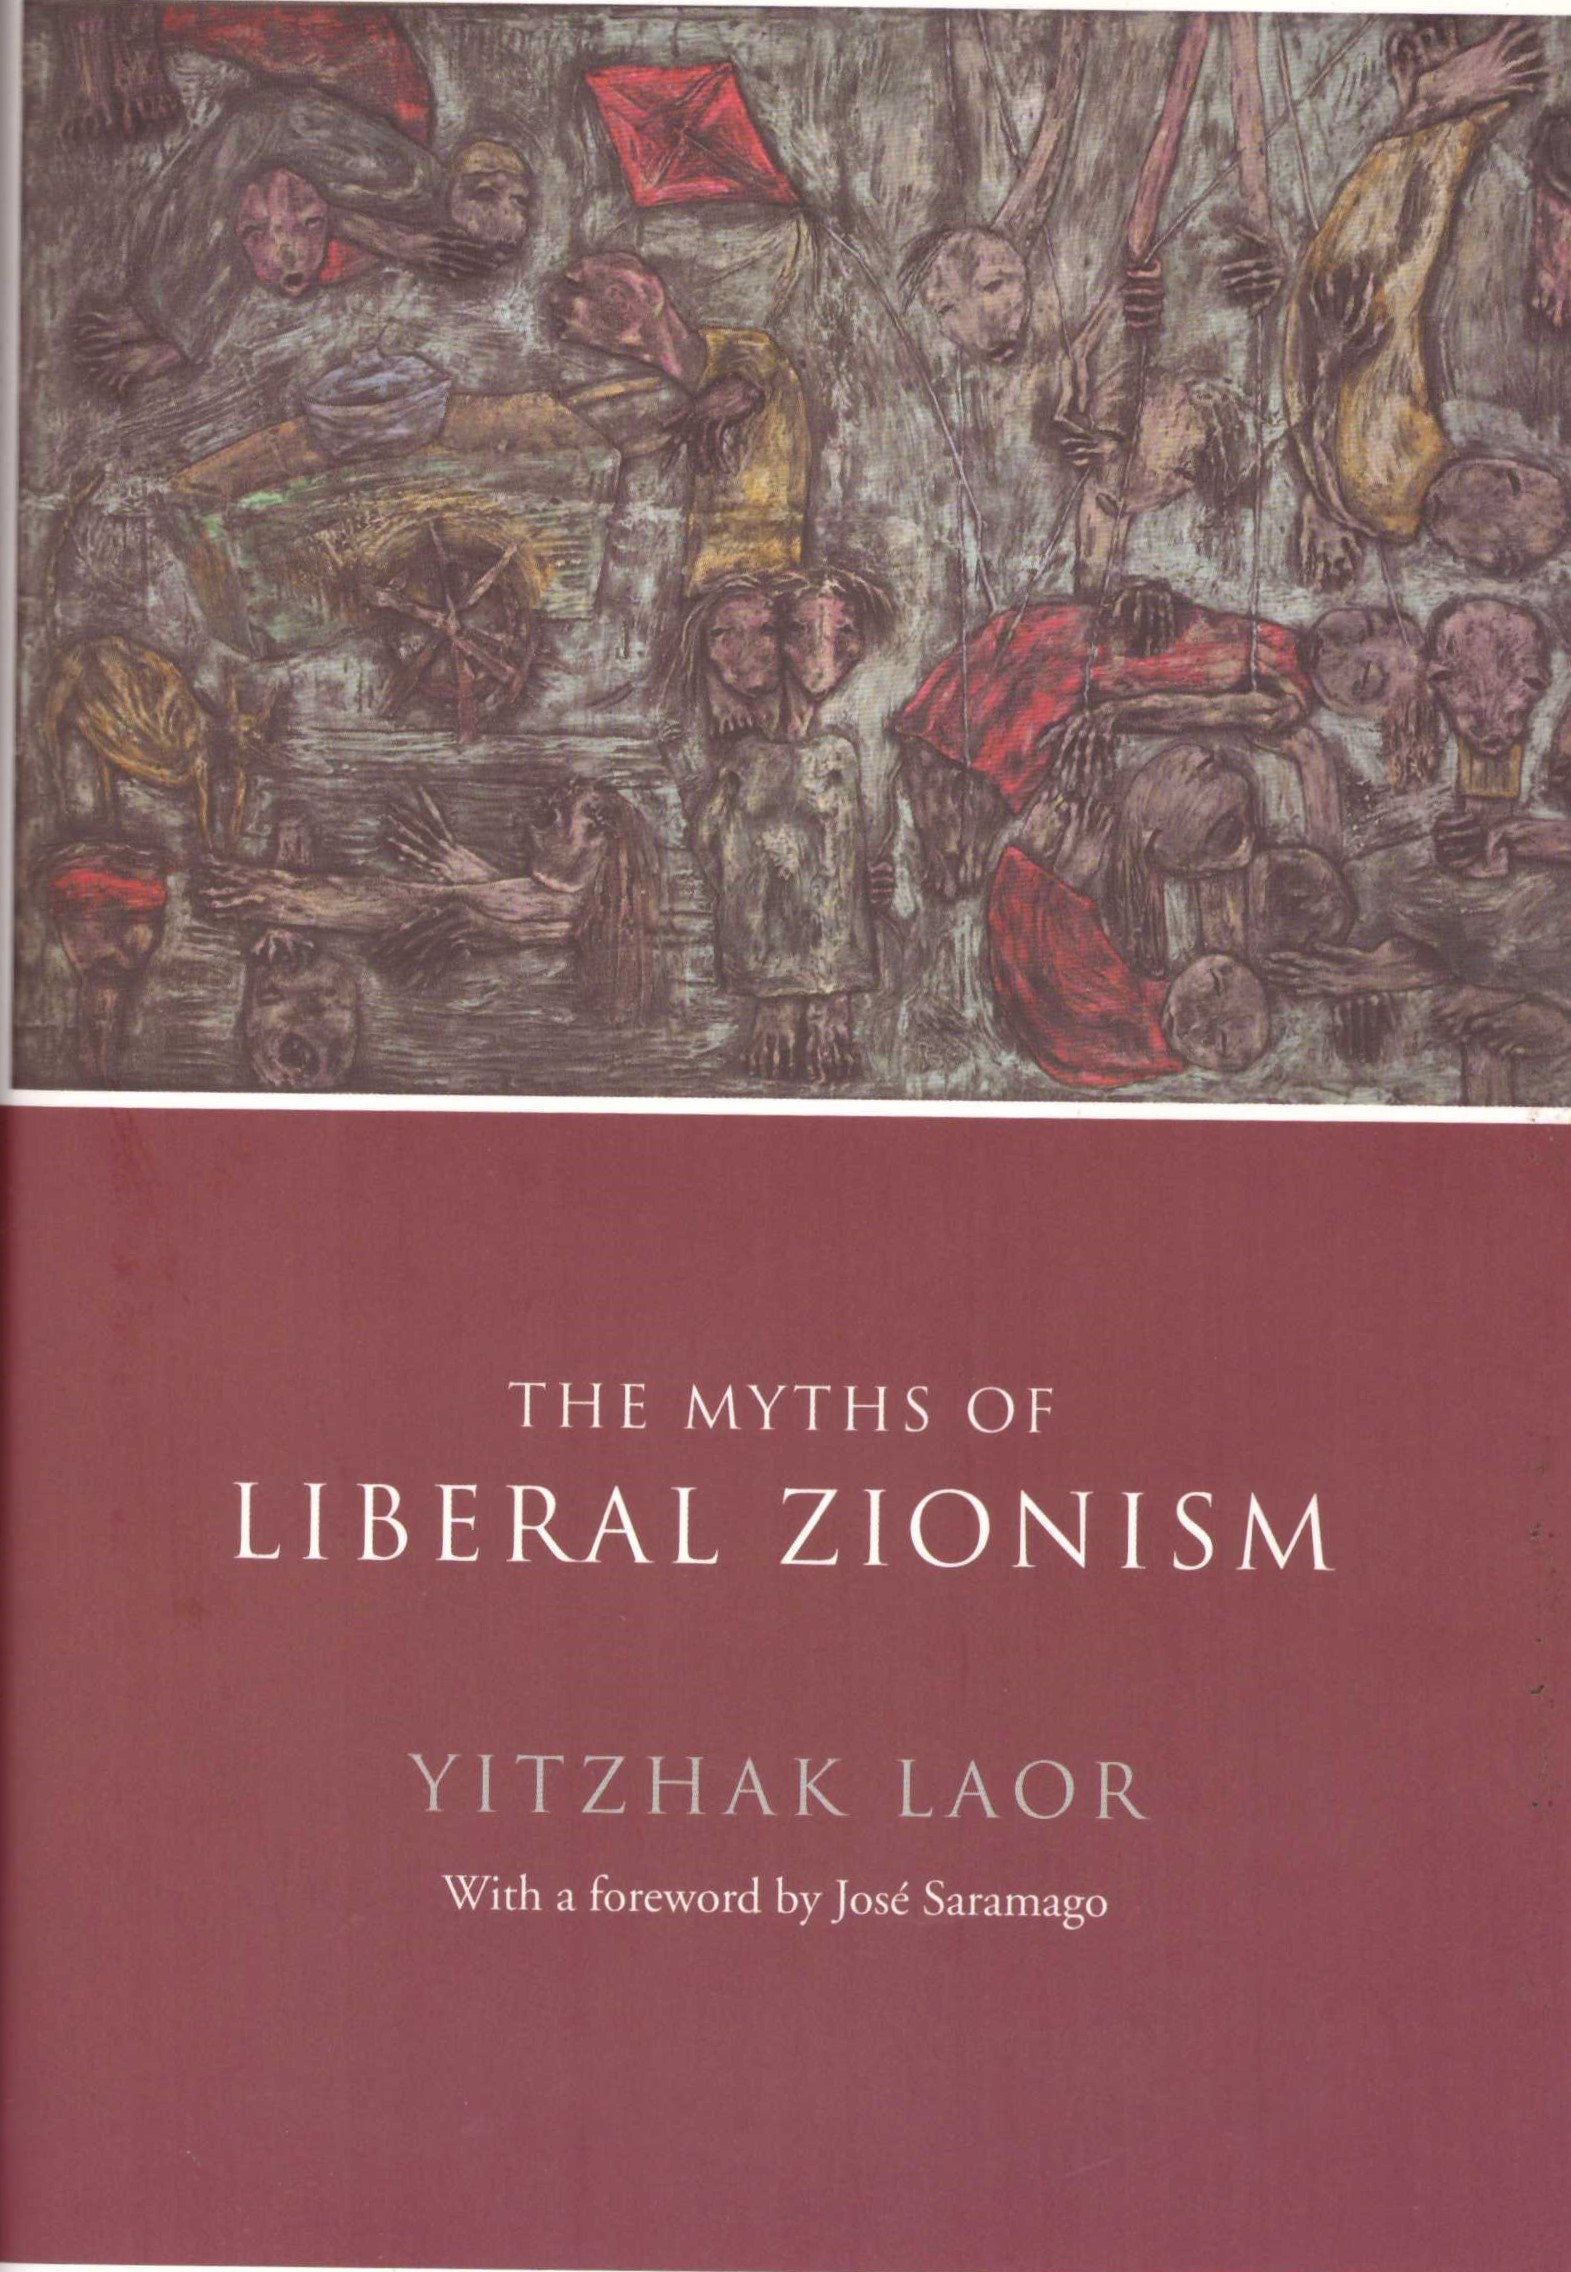 The Myths of Liberal Zionism